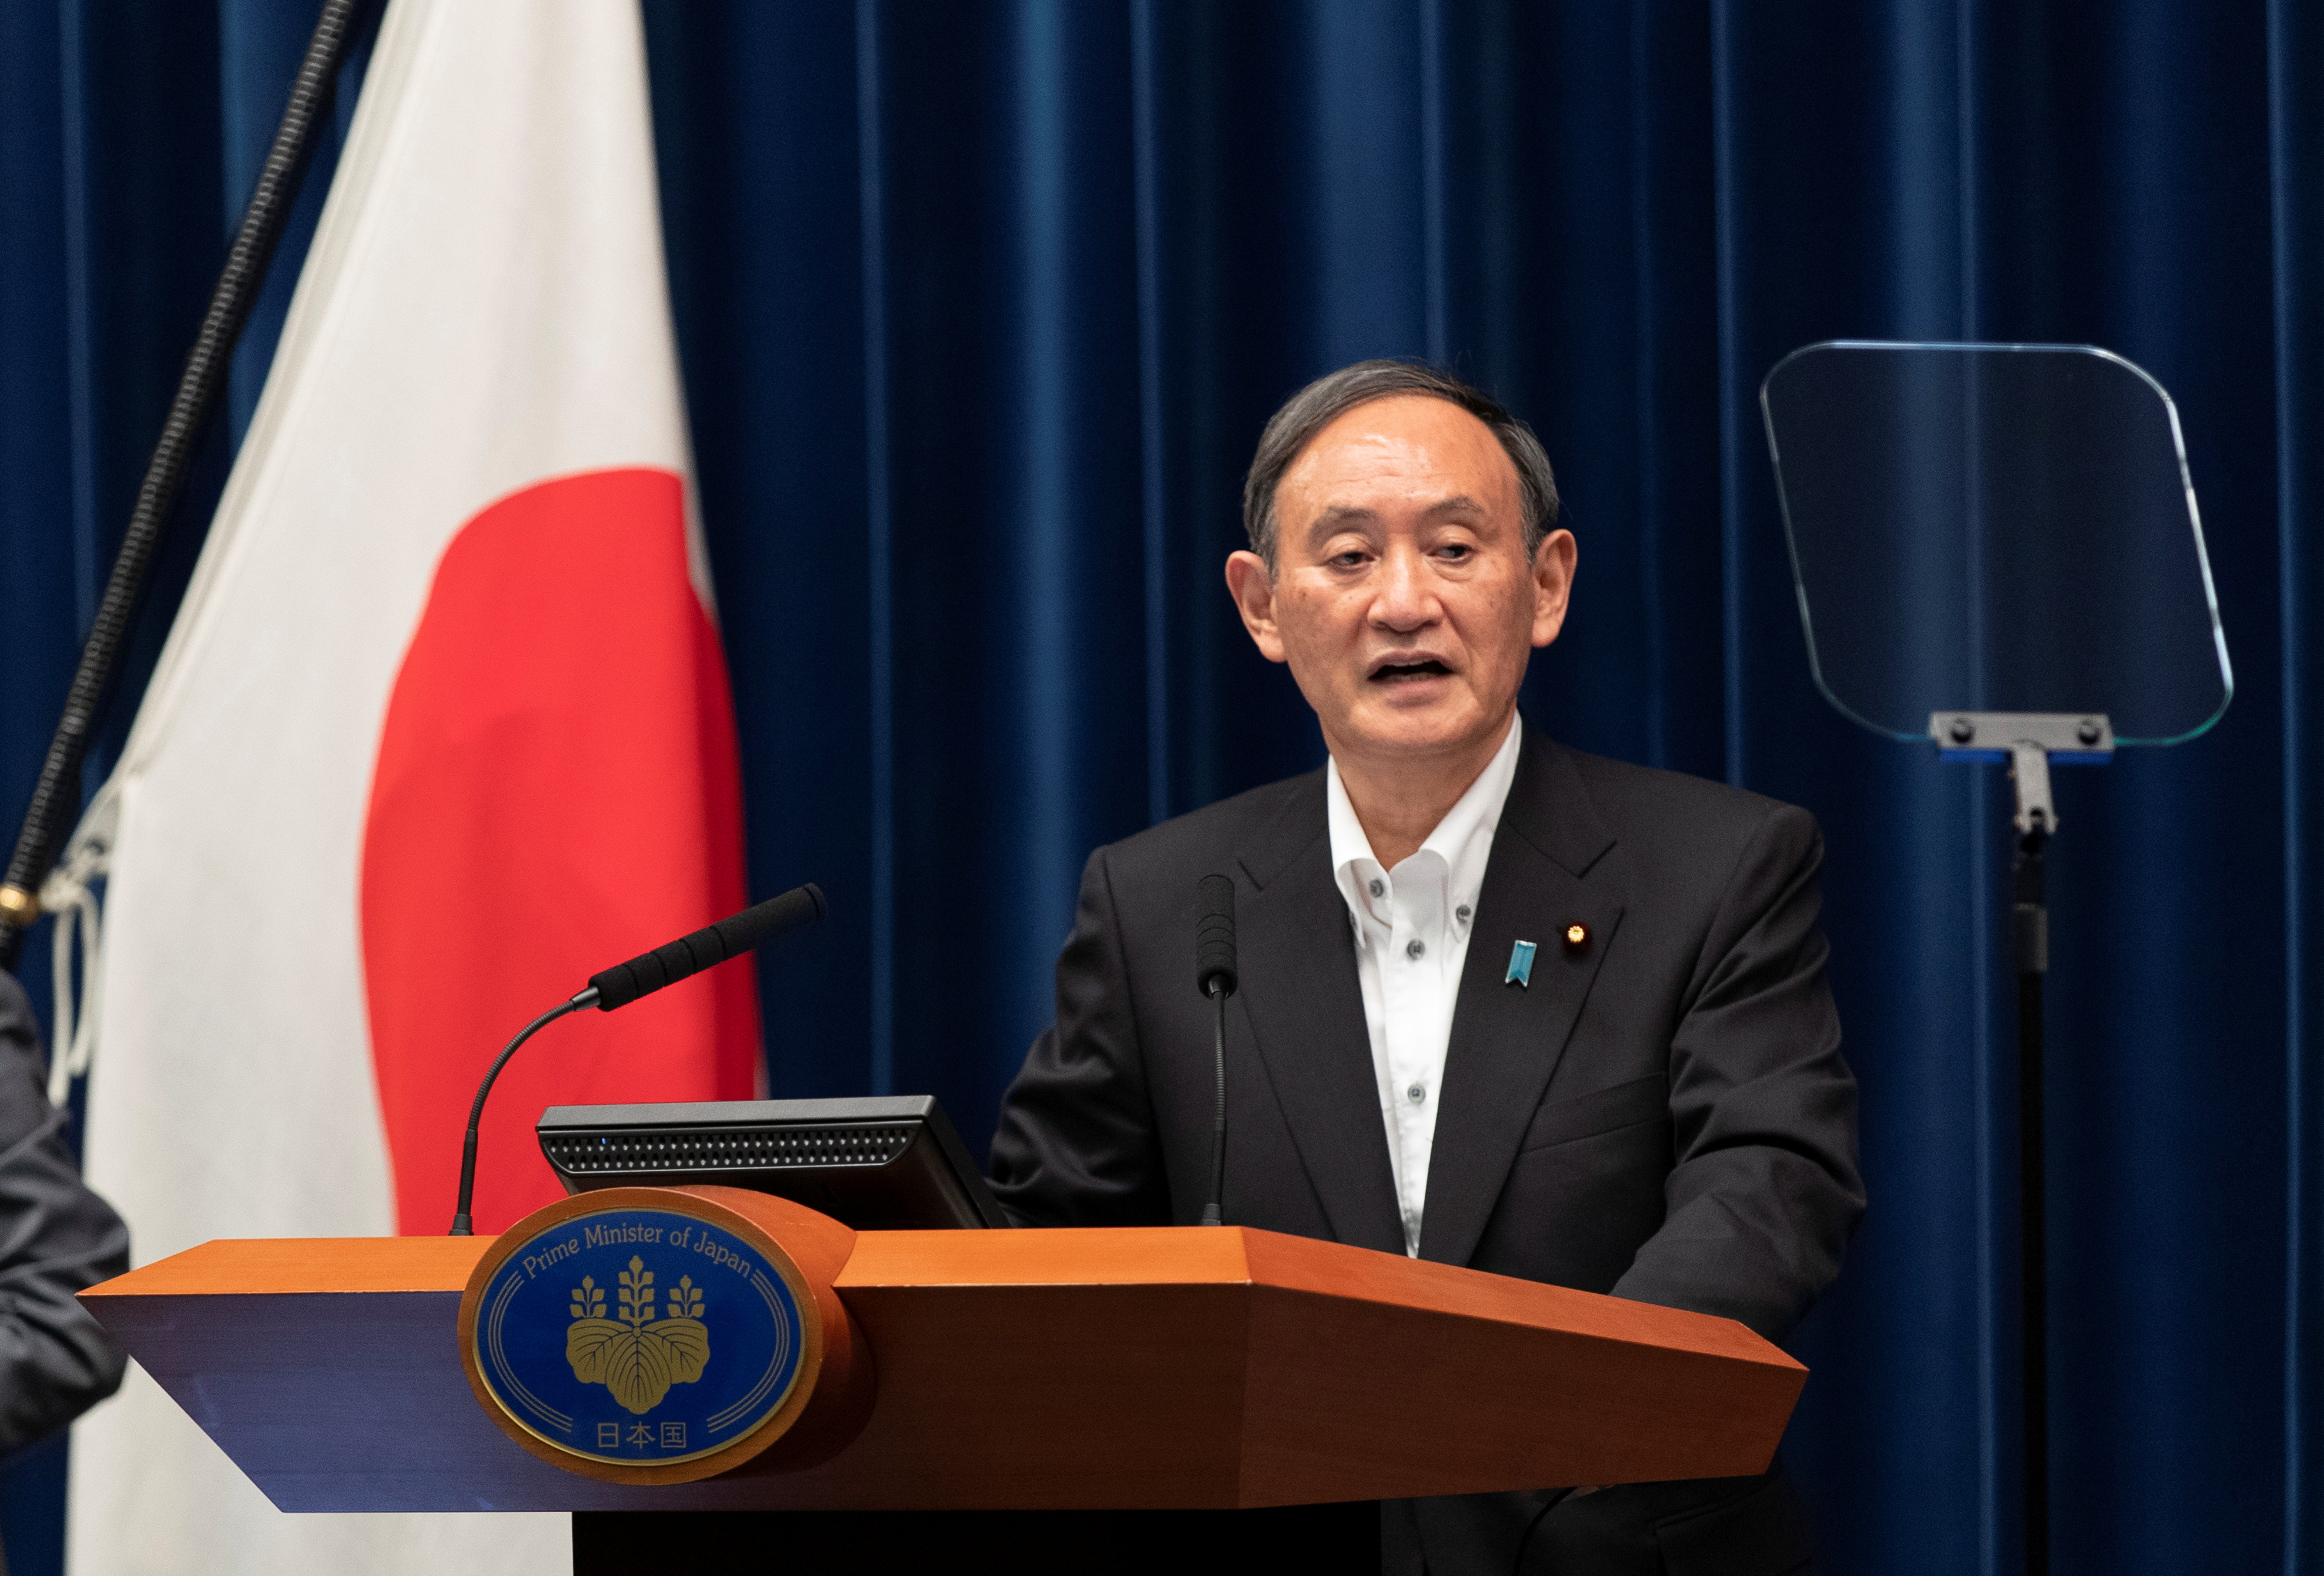 Japanese Prime Minister Yoshihide Suga speaks during a news conference in Tokyo, Japan, May 7, 2021. Hiro Komae/Pool via REUTERS